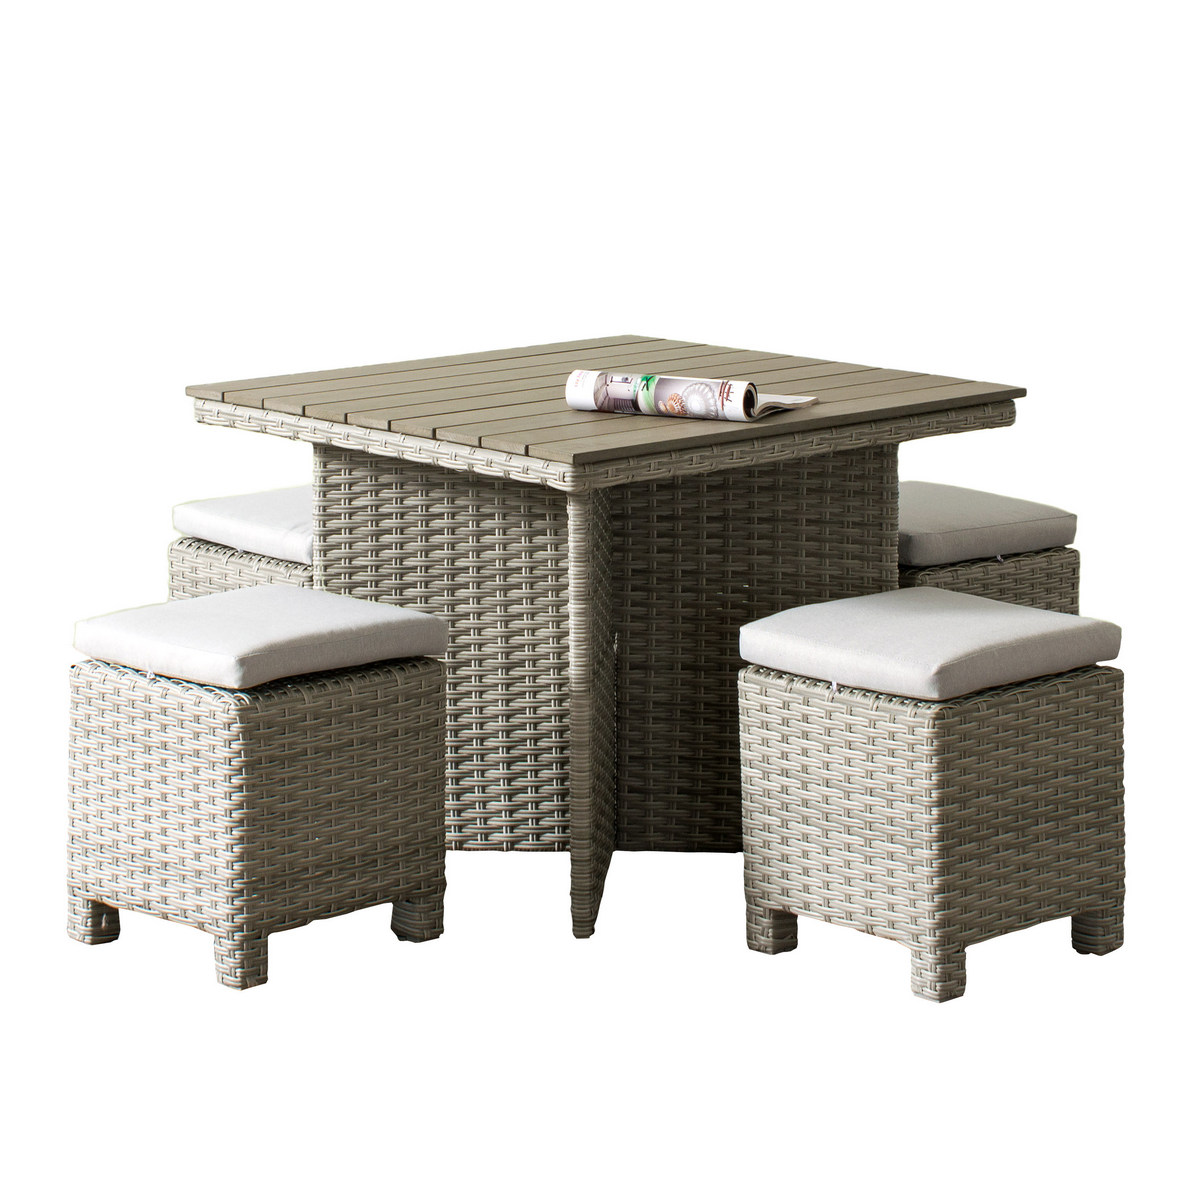 Corliving Pcl Brisbane Weather Resistant Resin Wicker Patio Dining Set